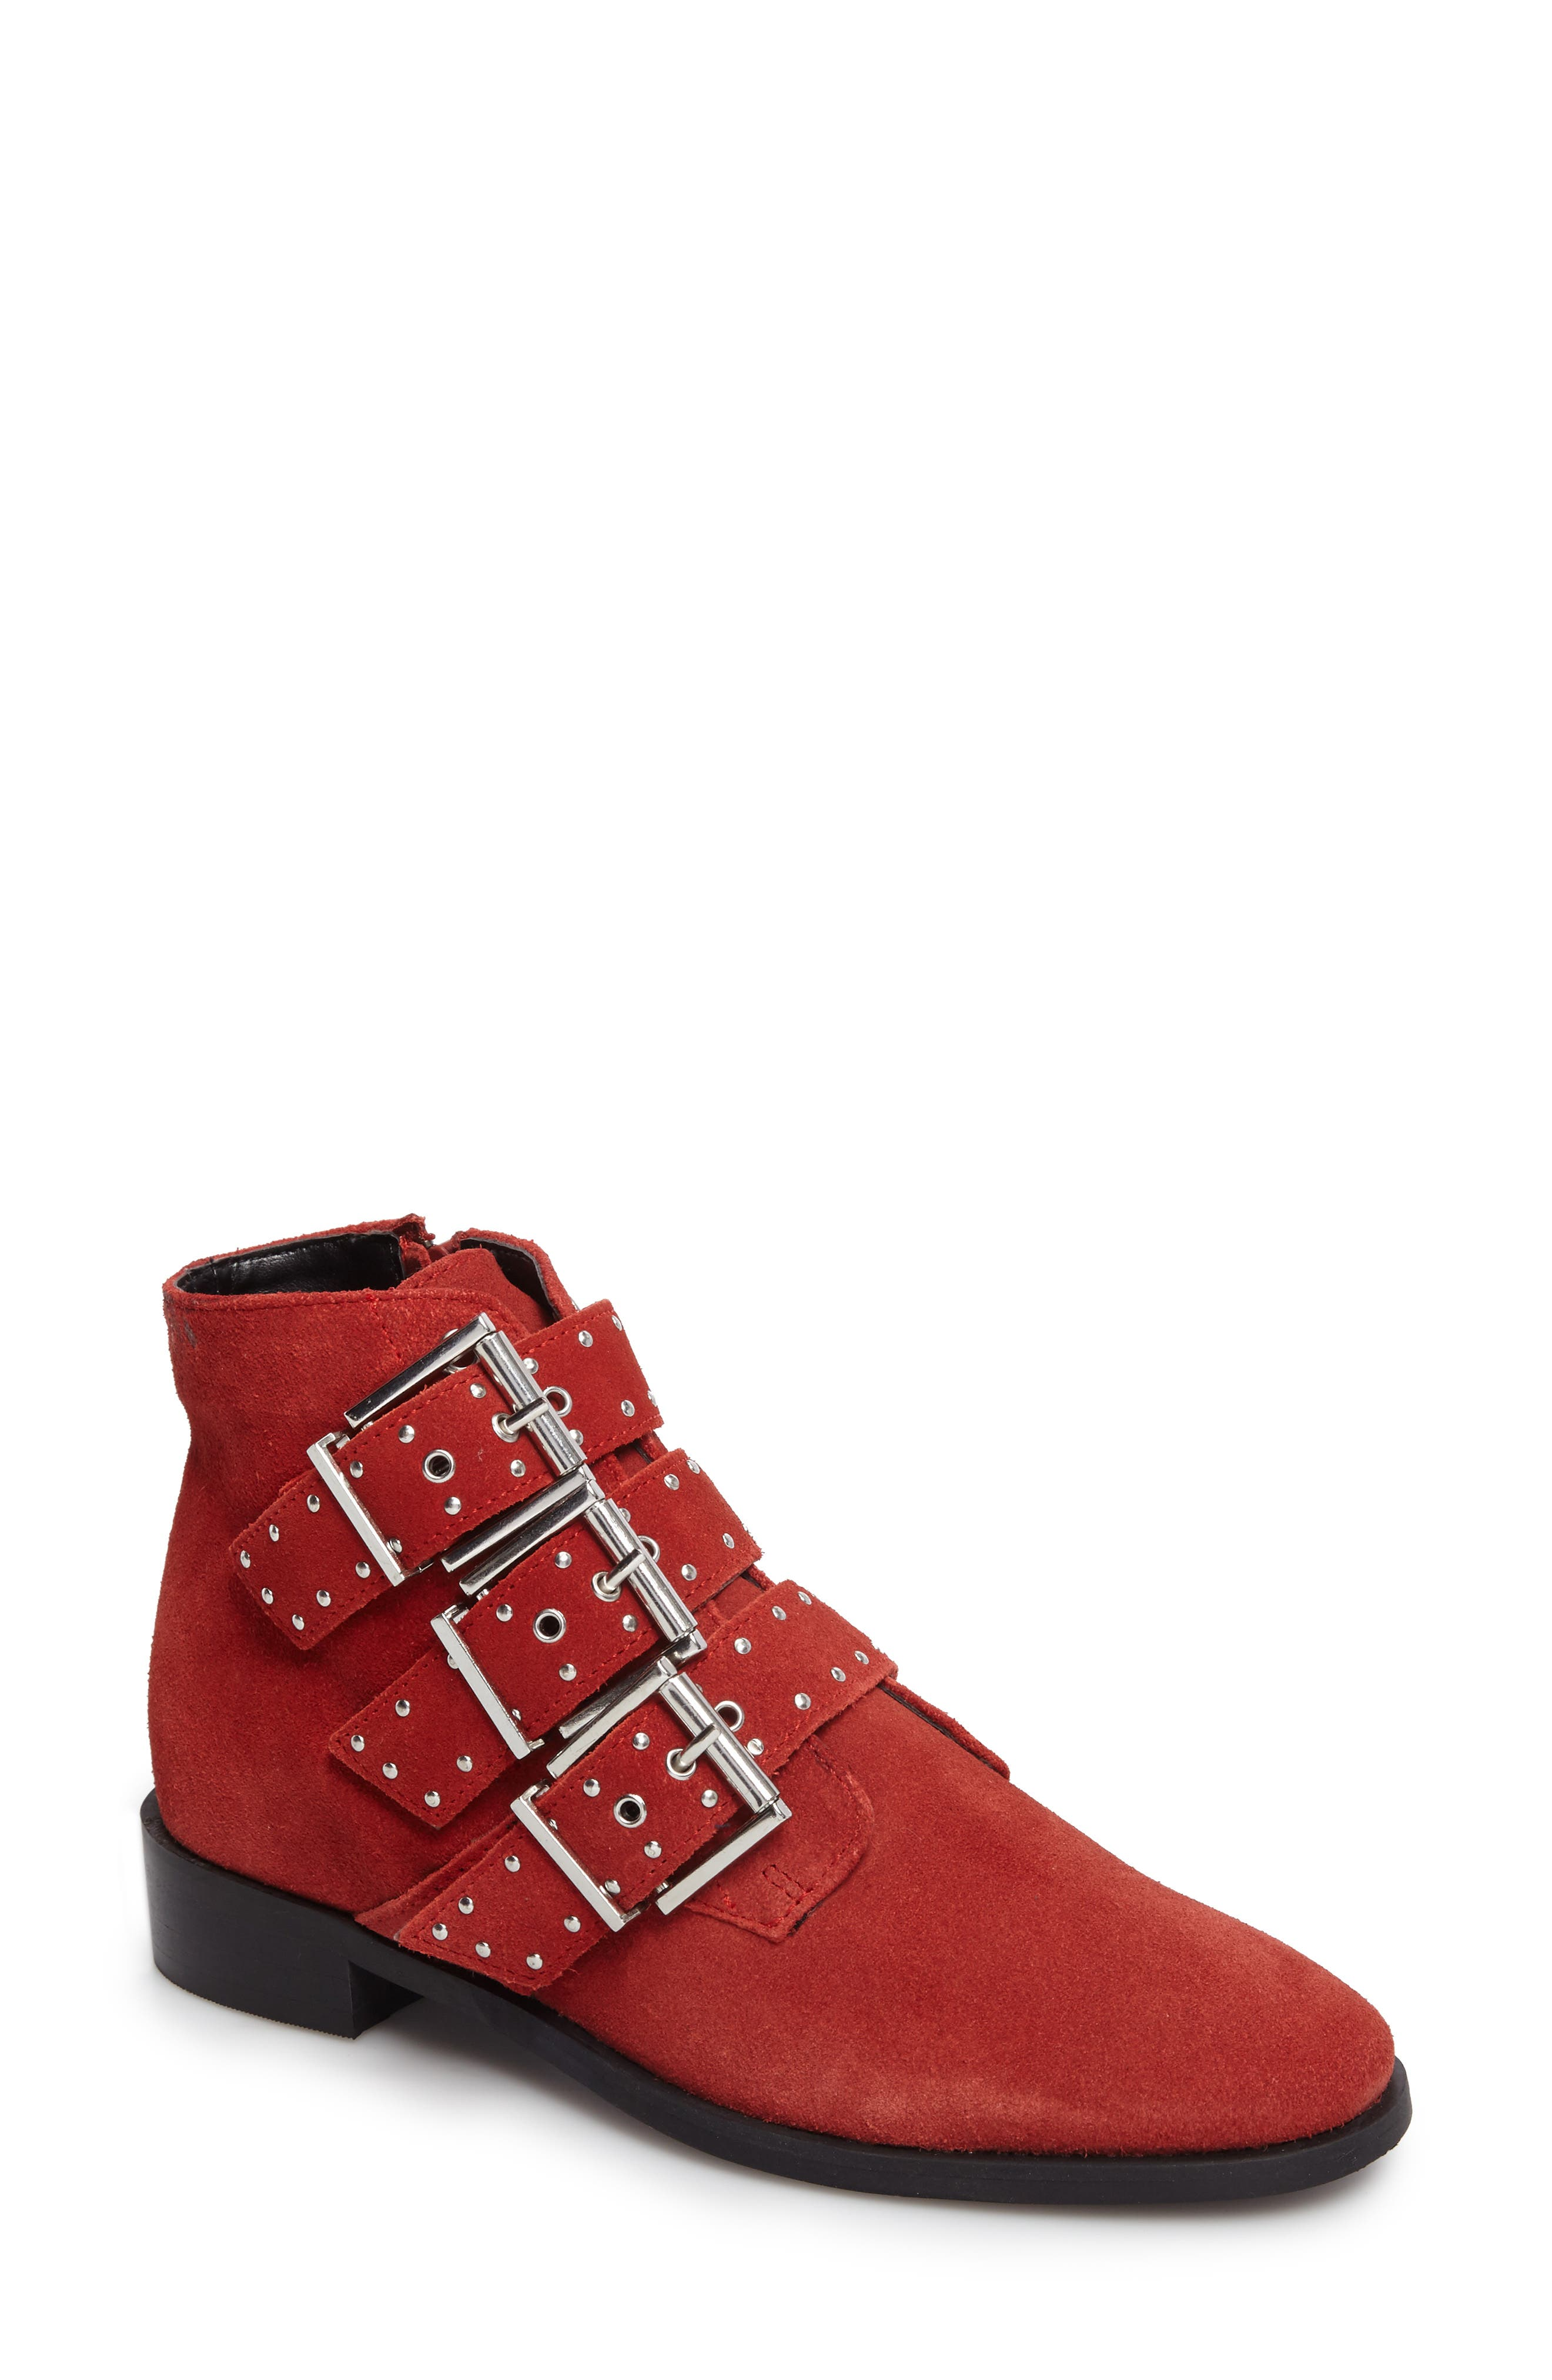 Krown Studded Bootie,                         Main,                         color, Red